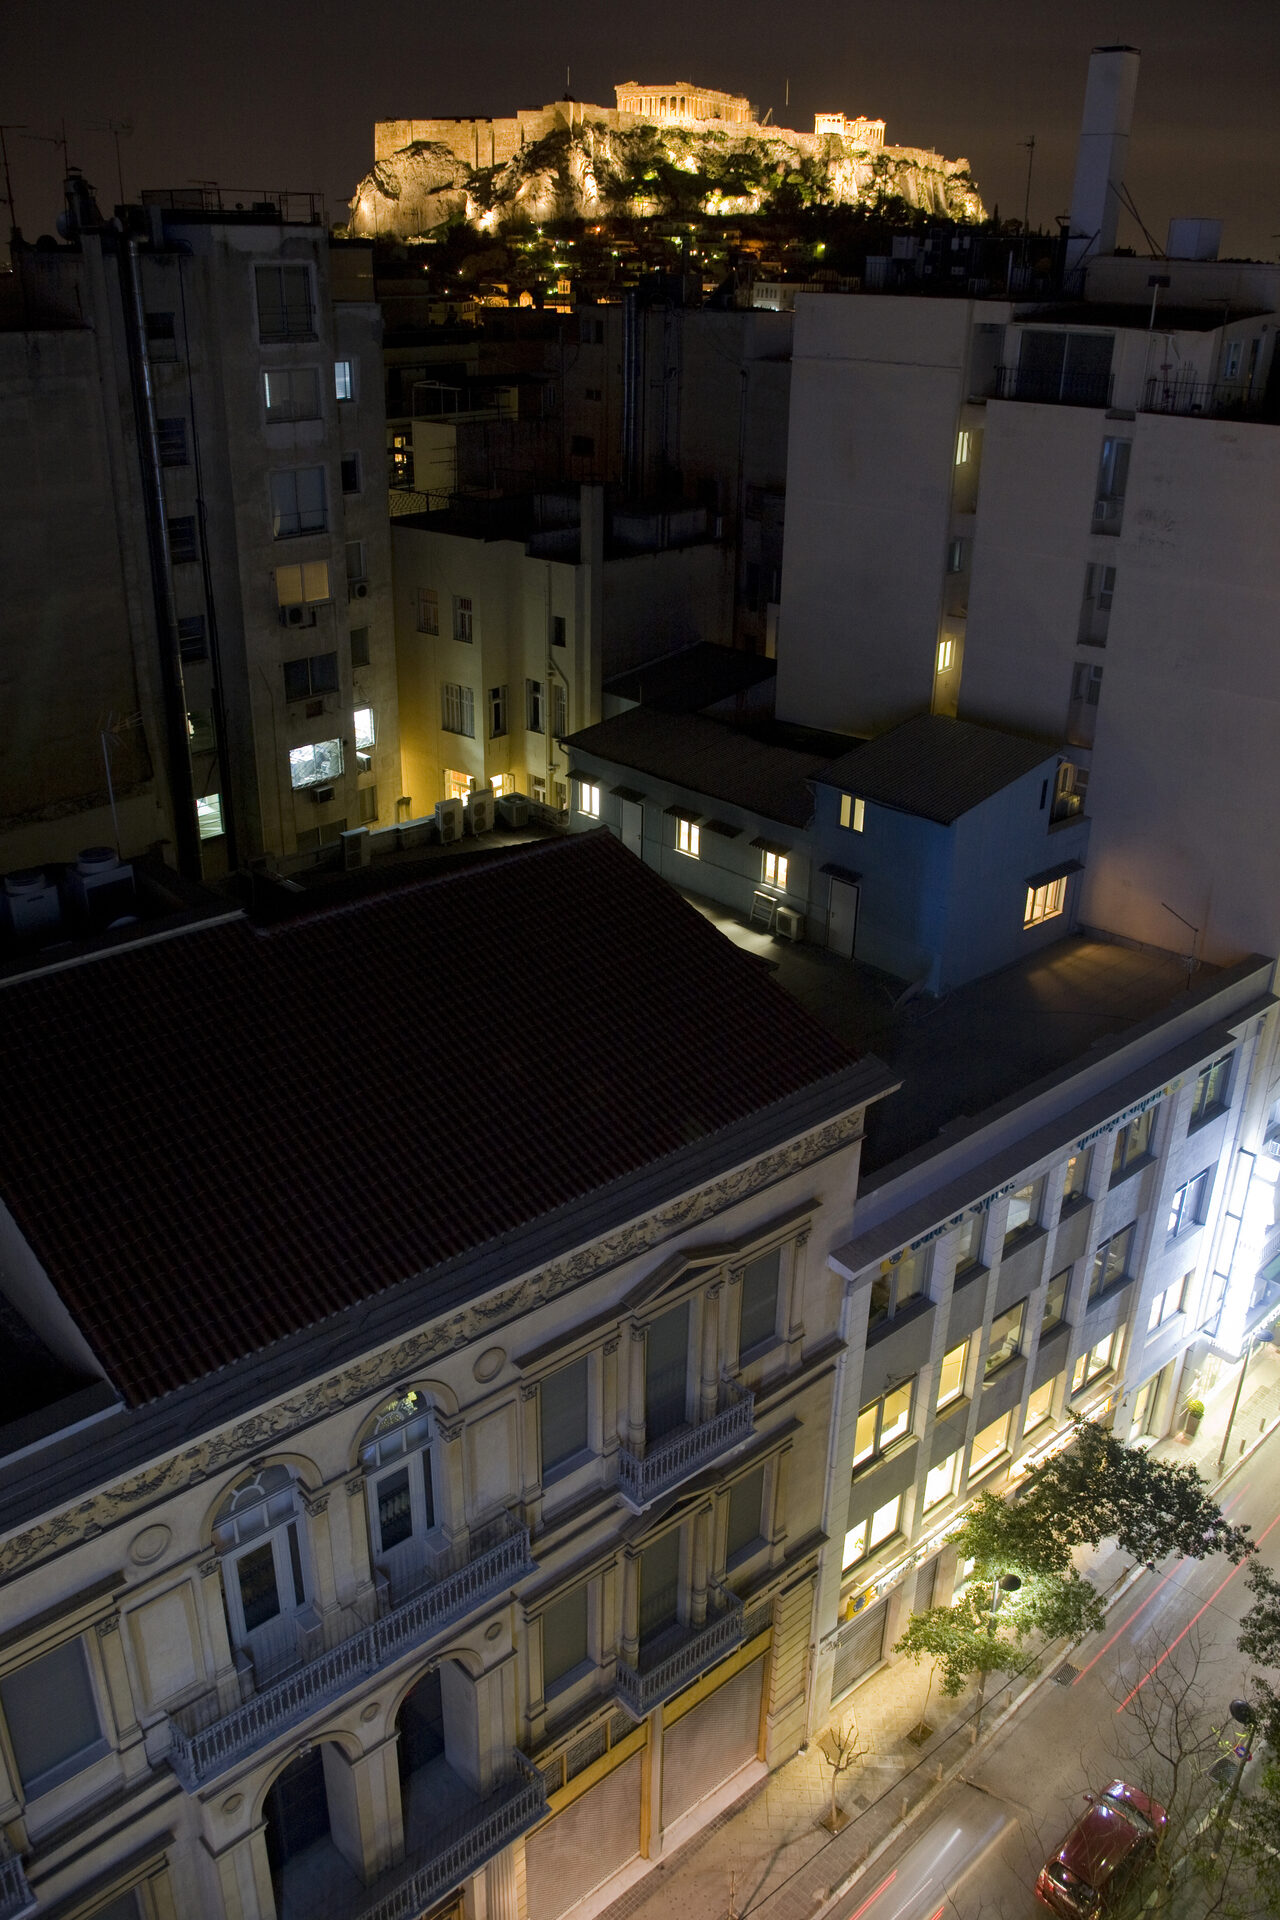 Arethusa Hotel: General view